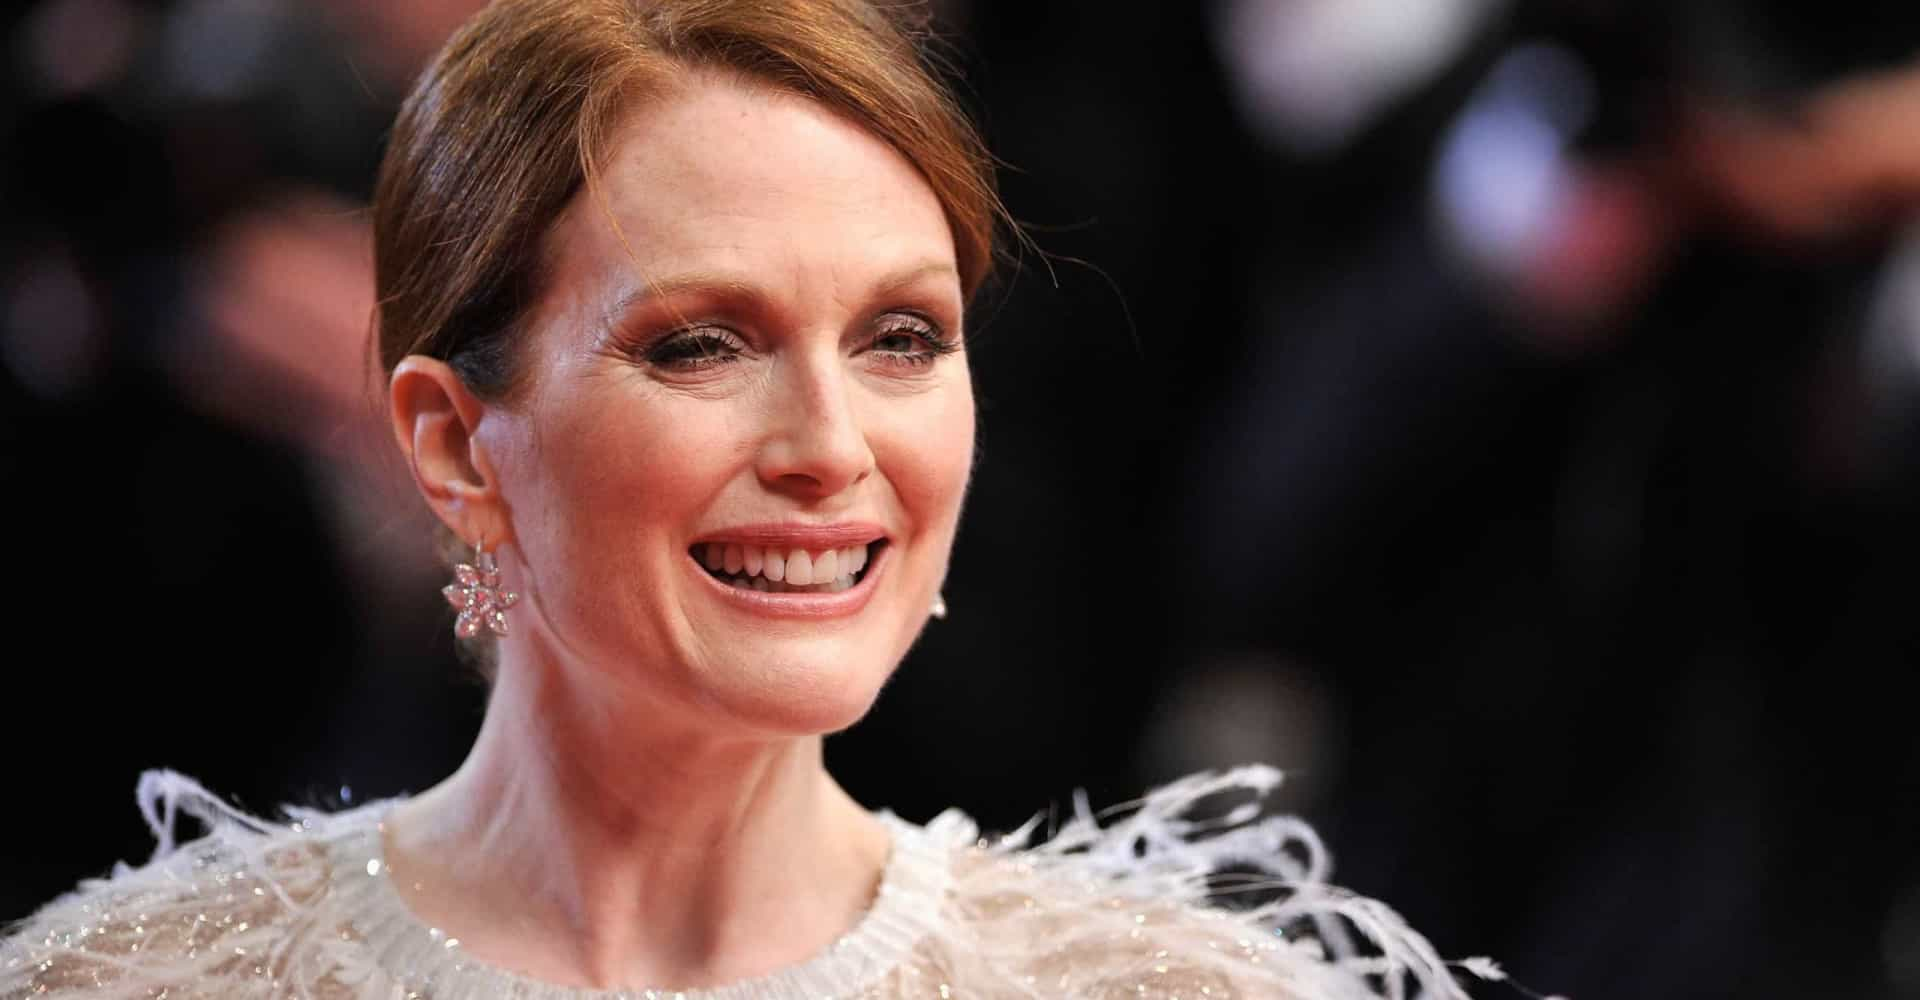 Julianne Moore: a gay life and career